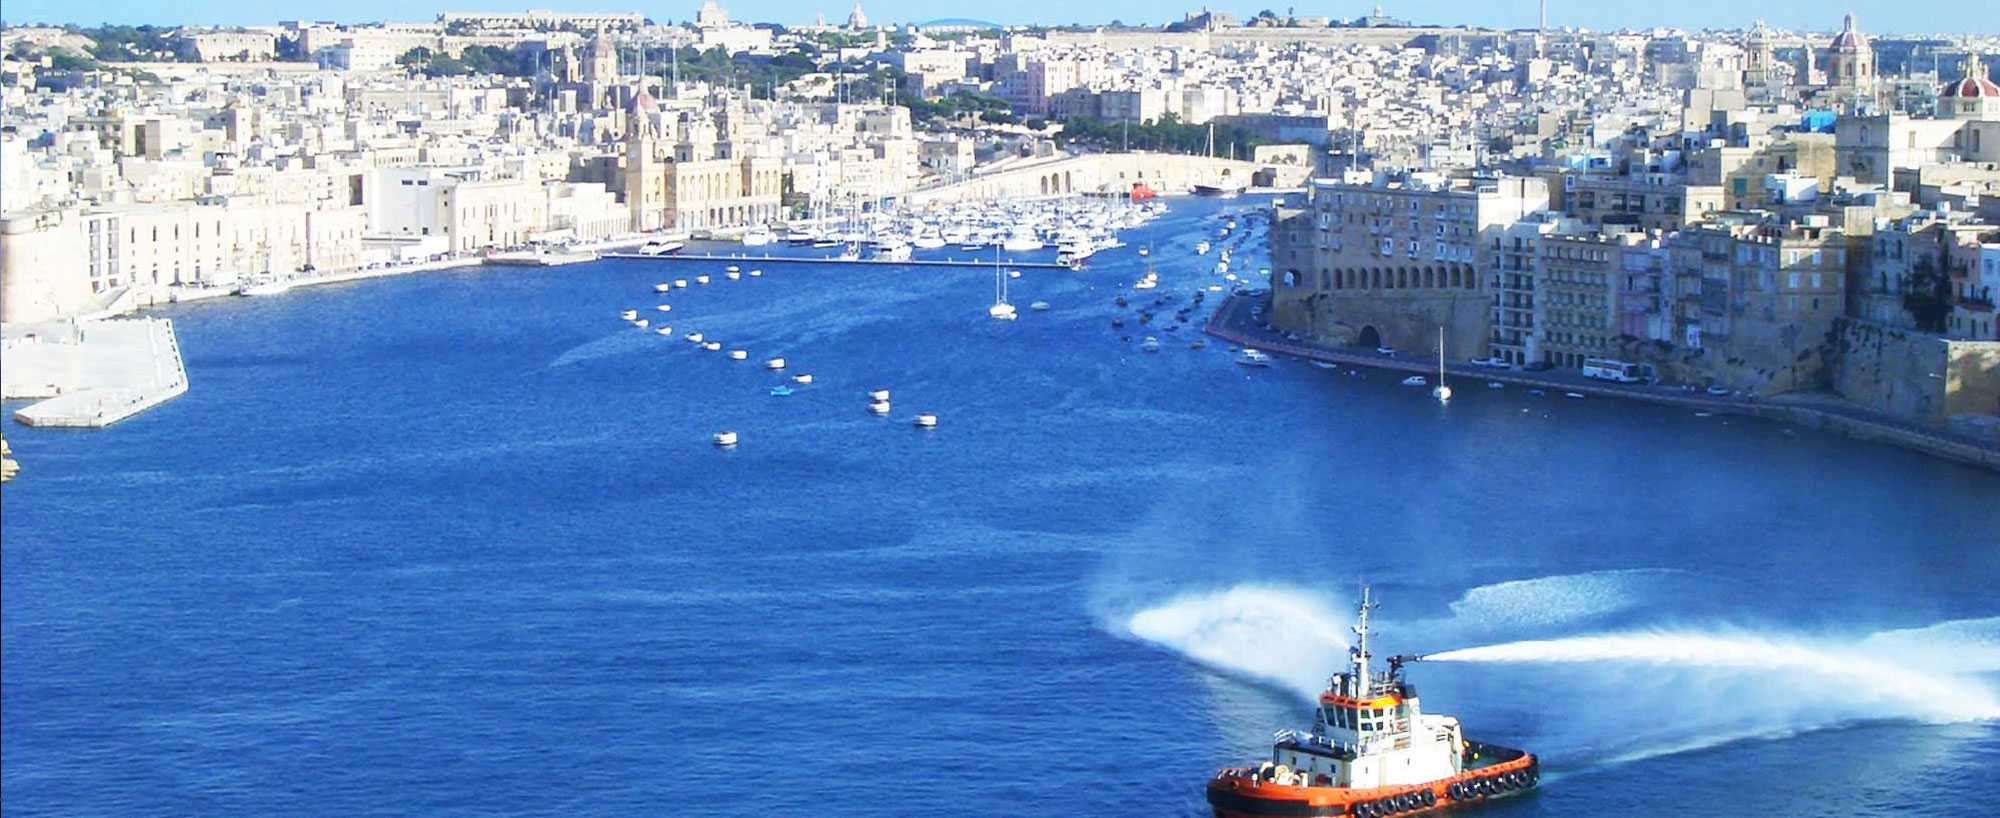 Malta Citizenship by Investment Program